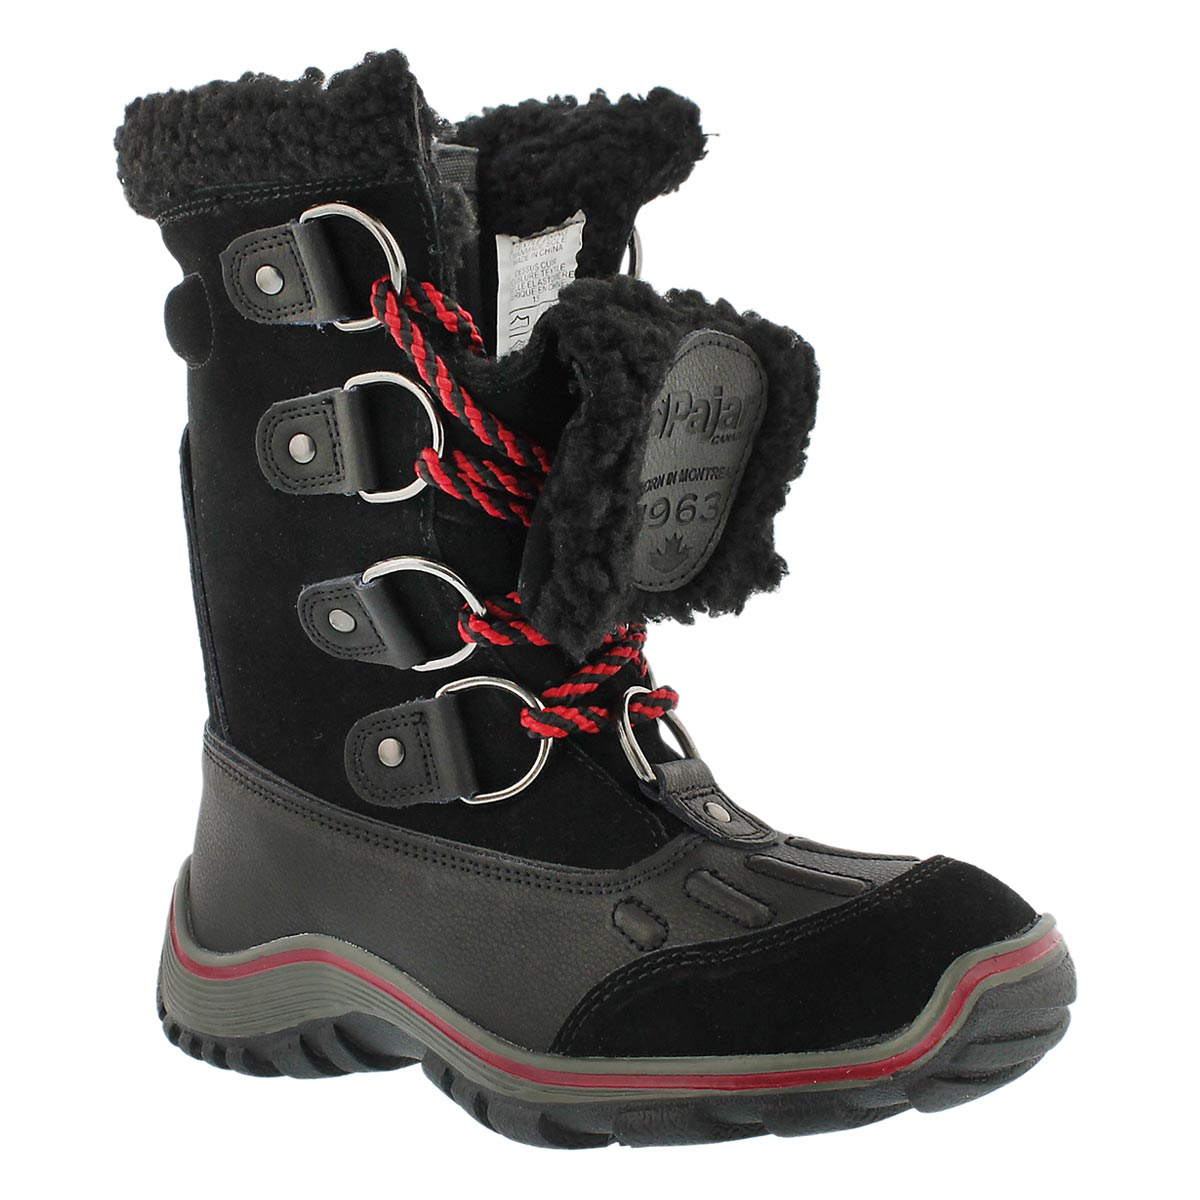 Women's ALINA blk lace up waterproof winter boots